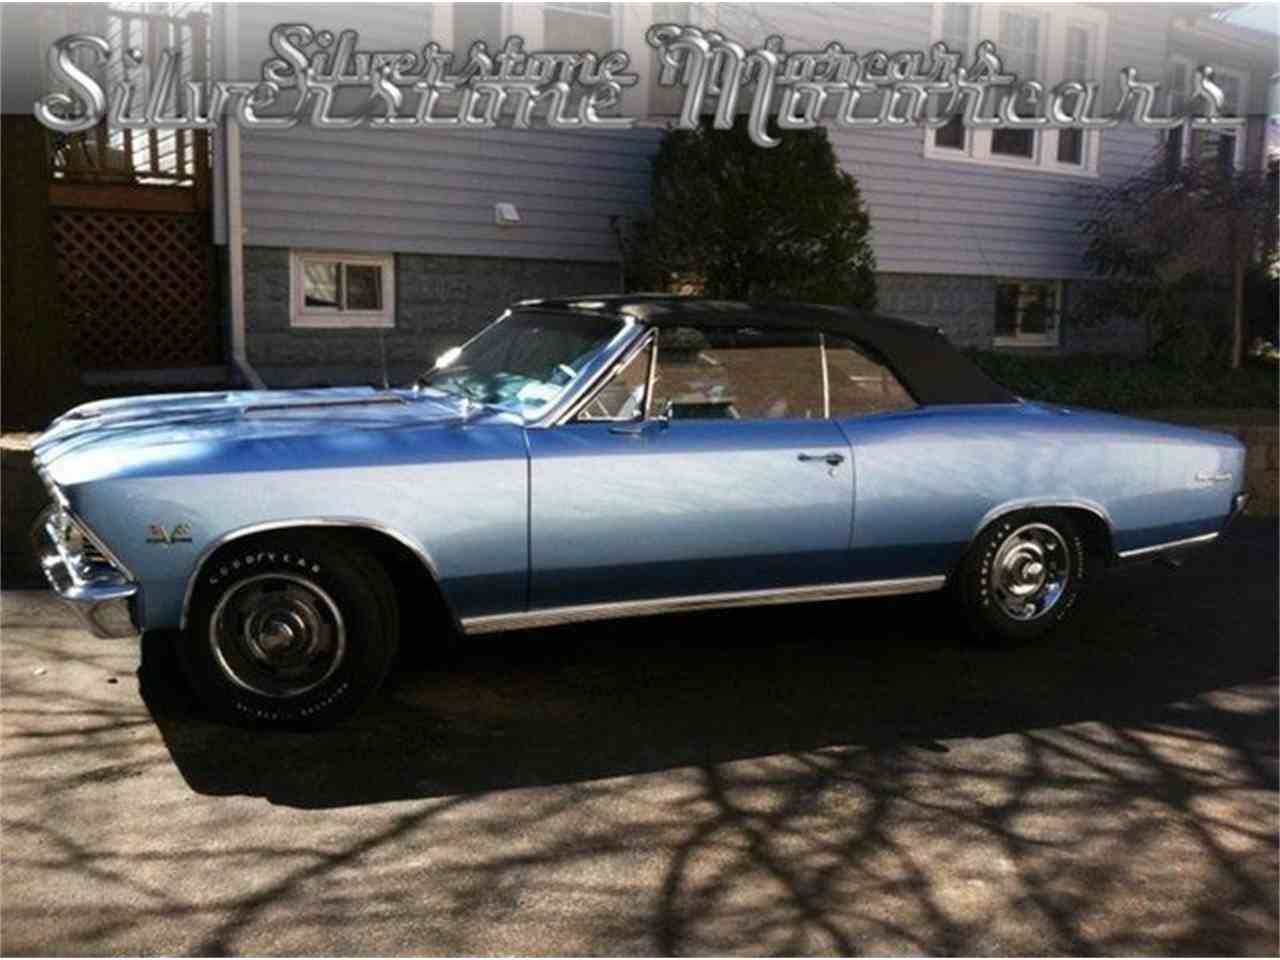 Large Picture of 1966 Chevelle SS located in Massachusetts - $47,500.00 Offered by Silverstone Motorcars - LRTM